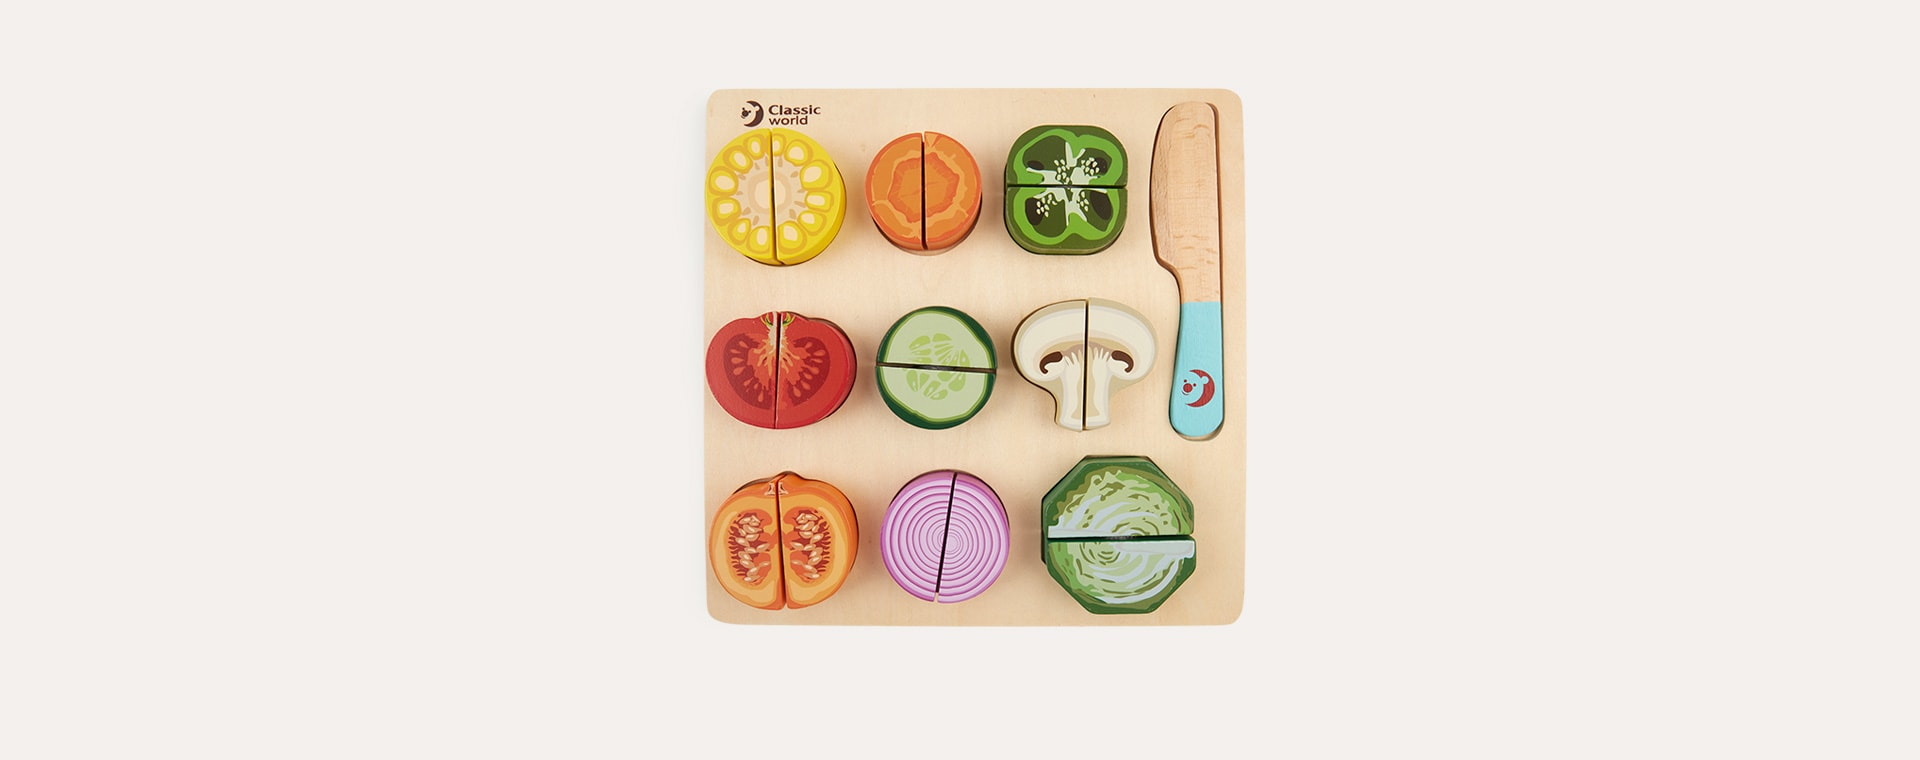 Vegetable Classic World Cutting Vegetable Puzzle